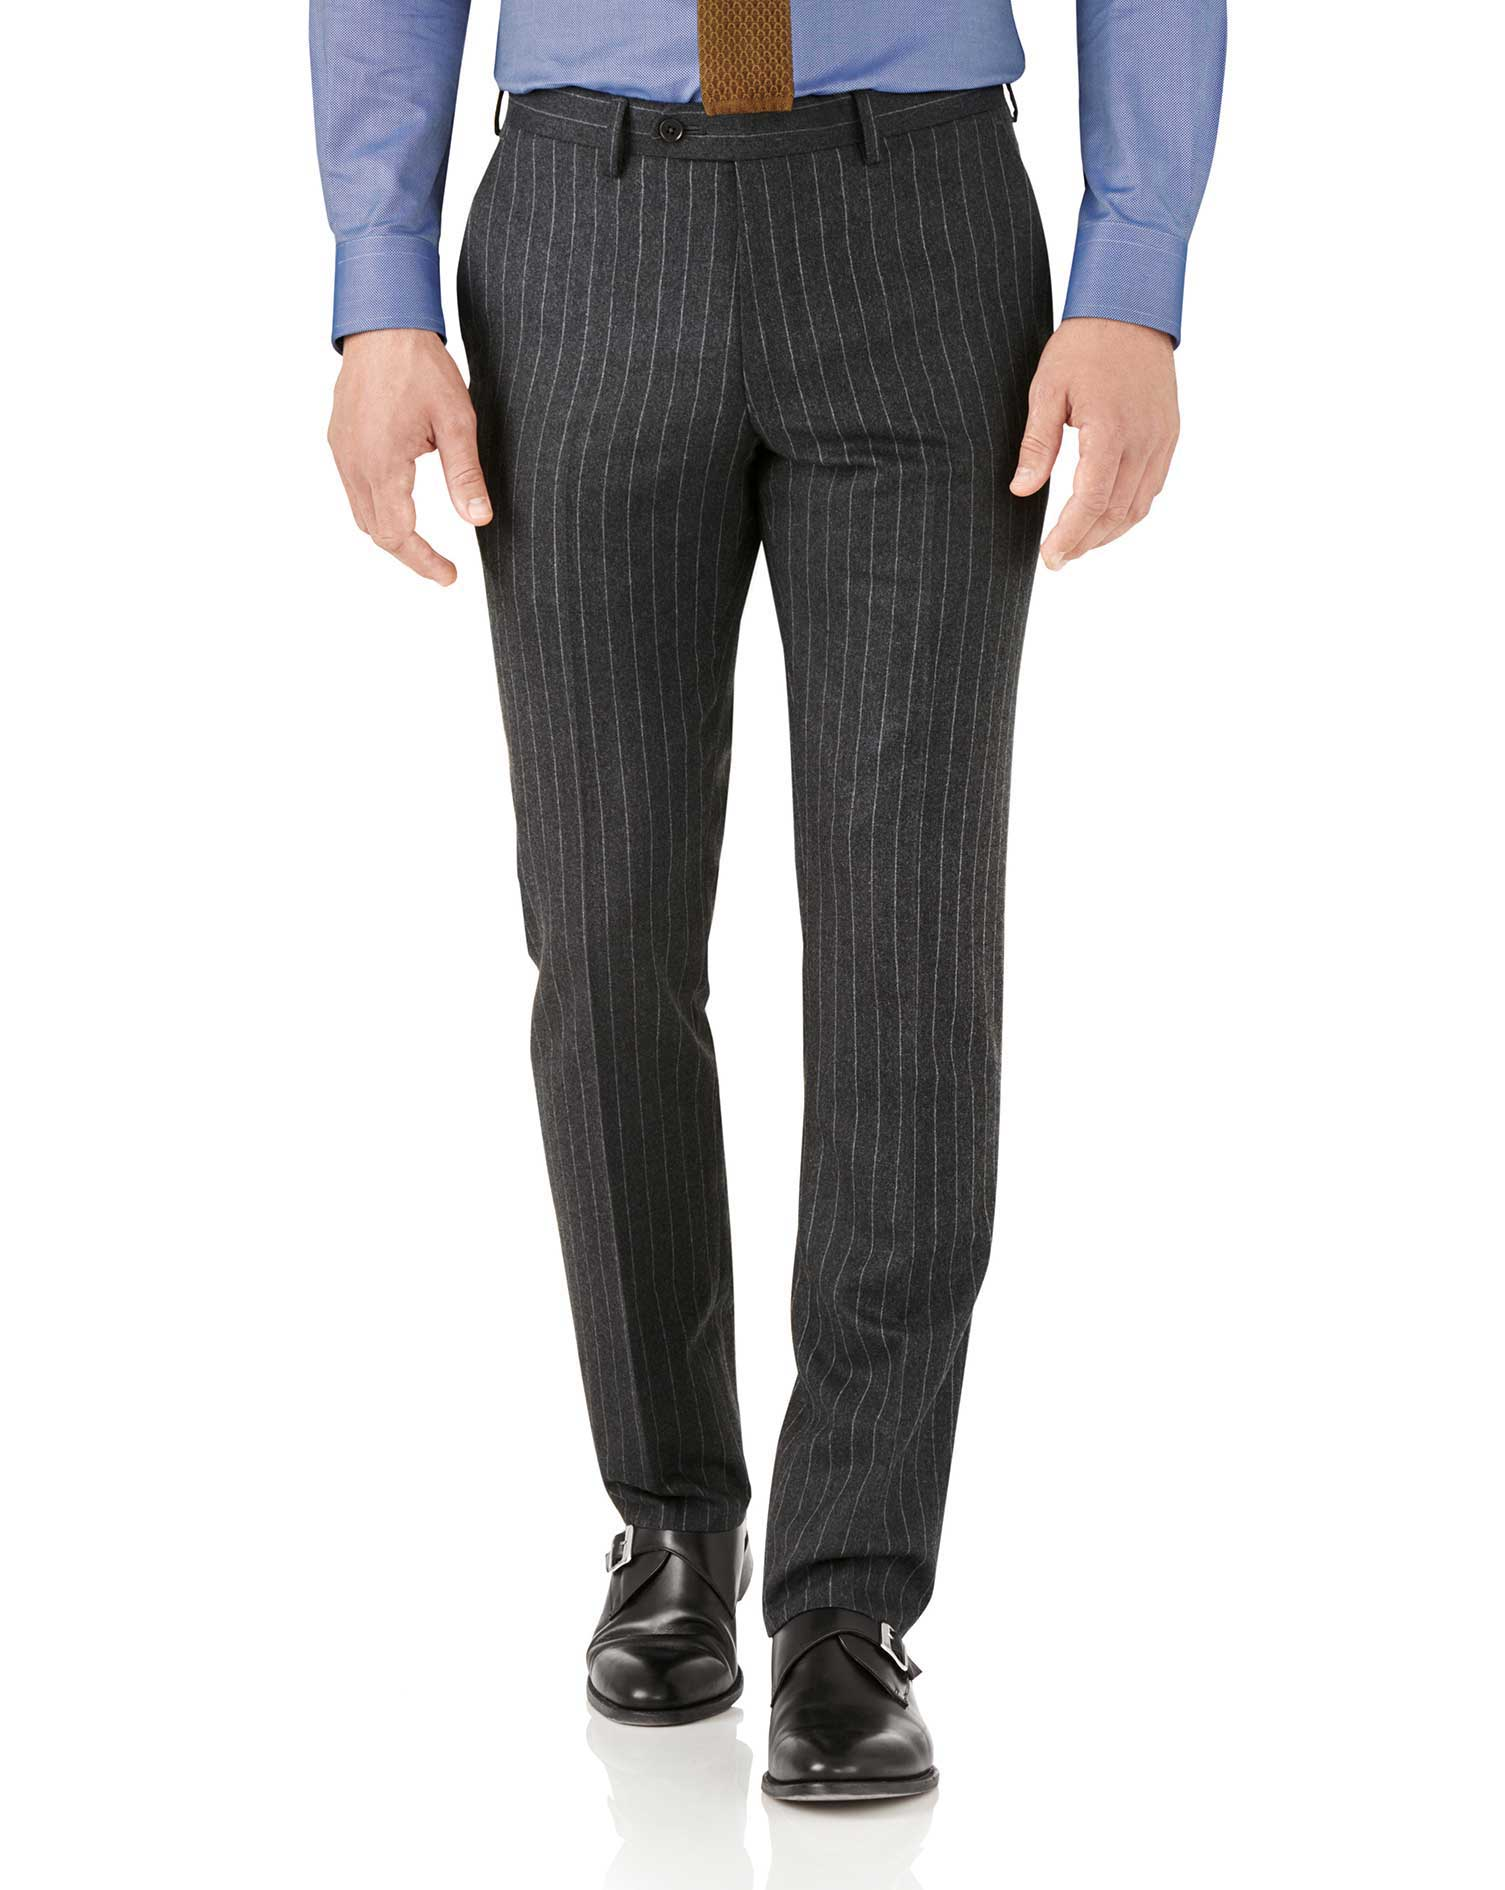 Charcoal Stripe Slim Fit Flannel Business Suit Trousers Size W32 L34 by Charles Tyrwhitt